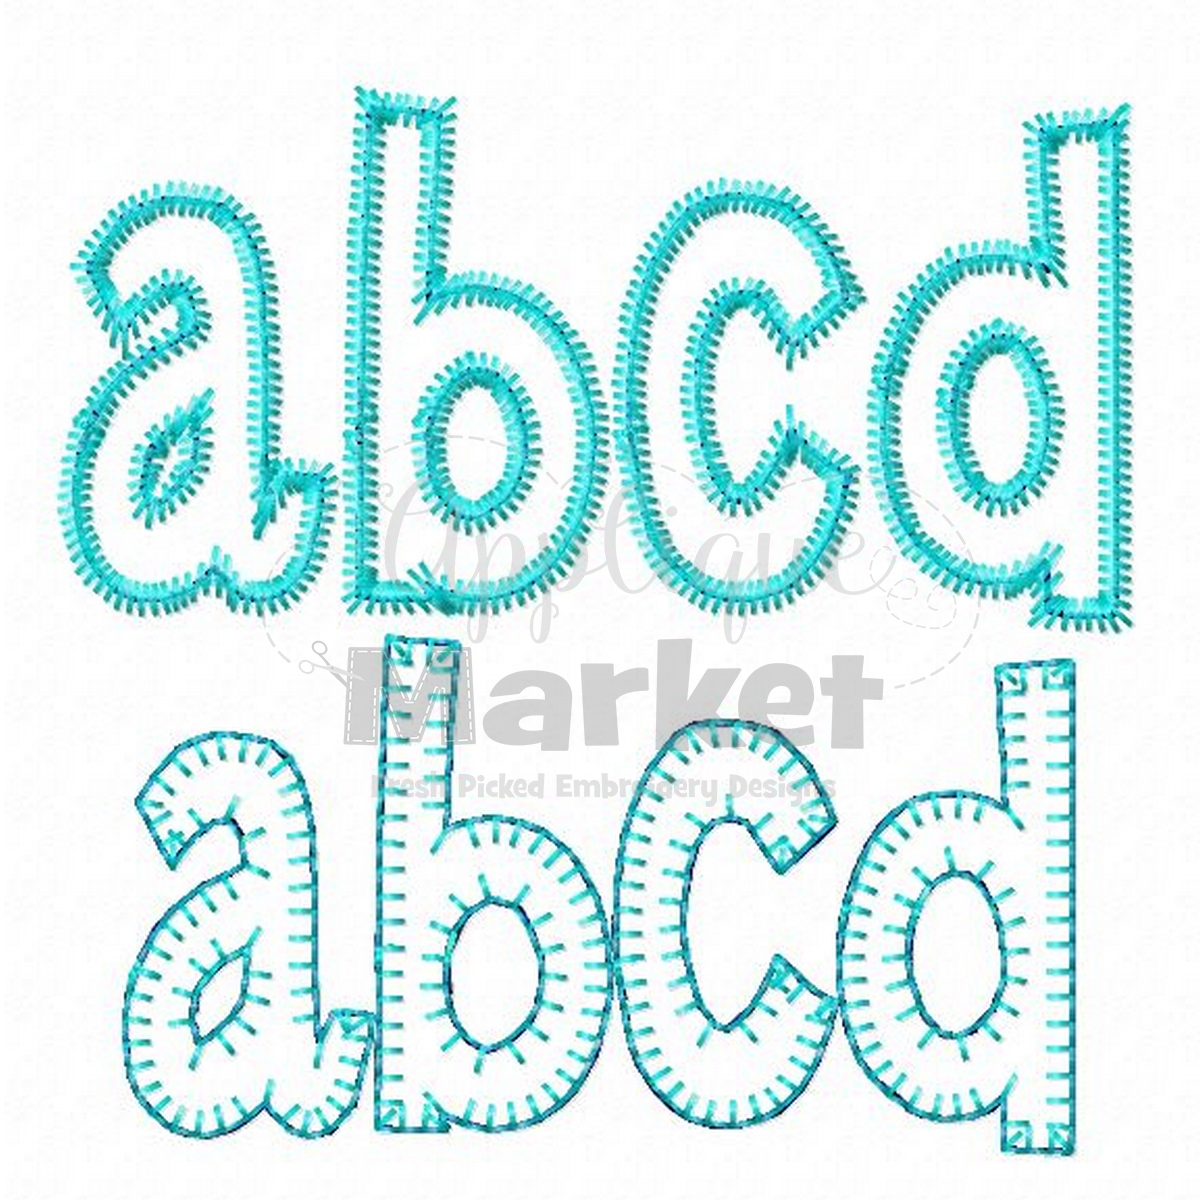 henry applique alphabet applique design